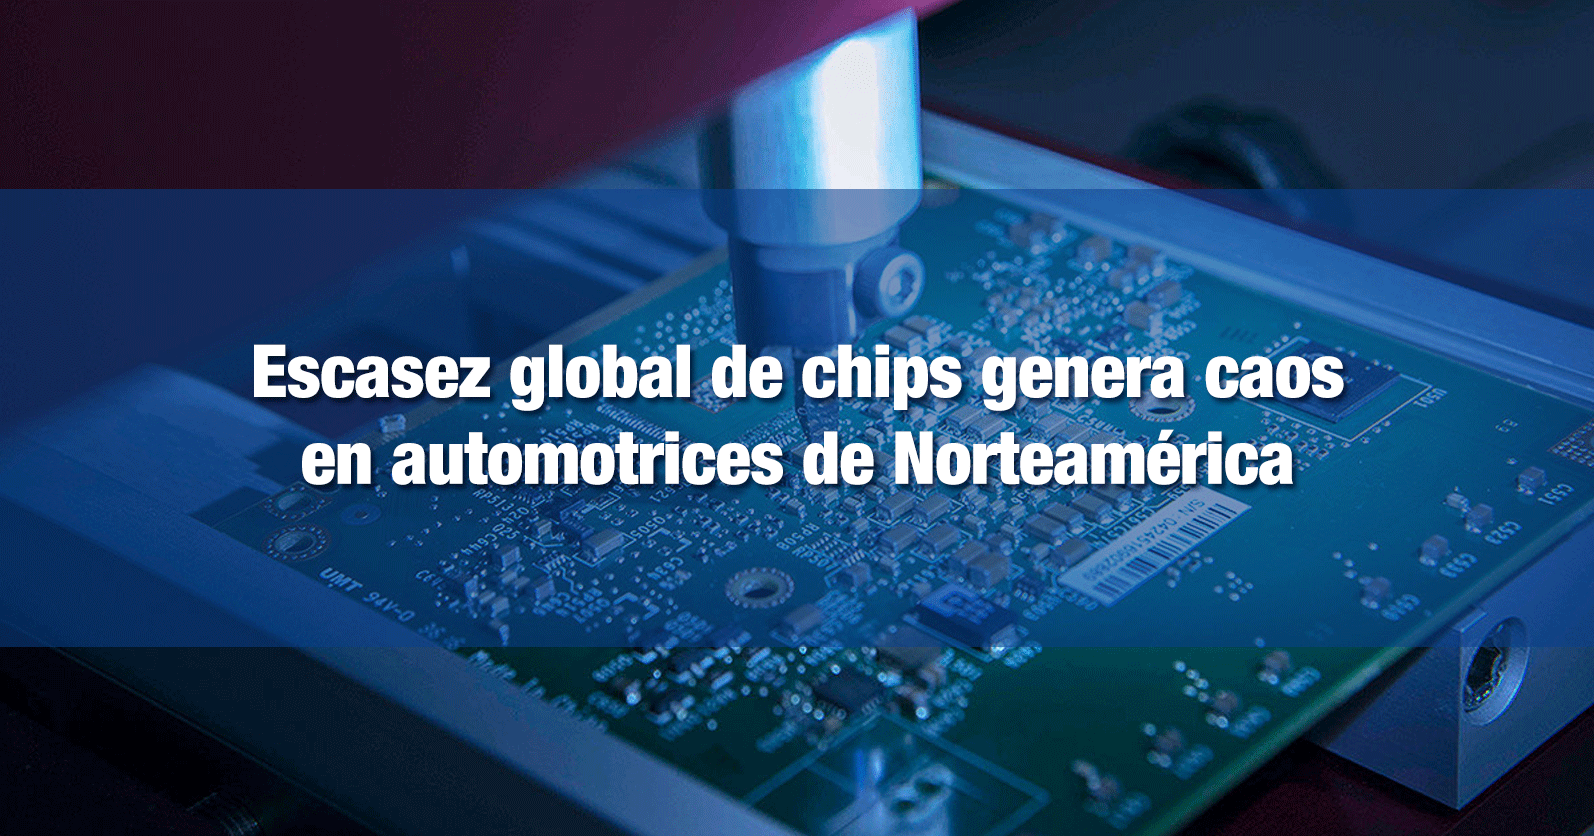 Escasez global de chips genera caos en automotrices de Norteamérica